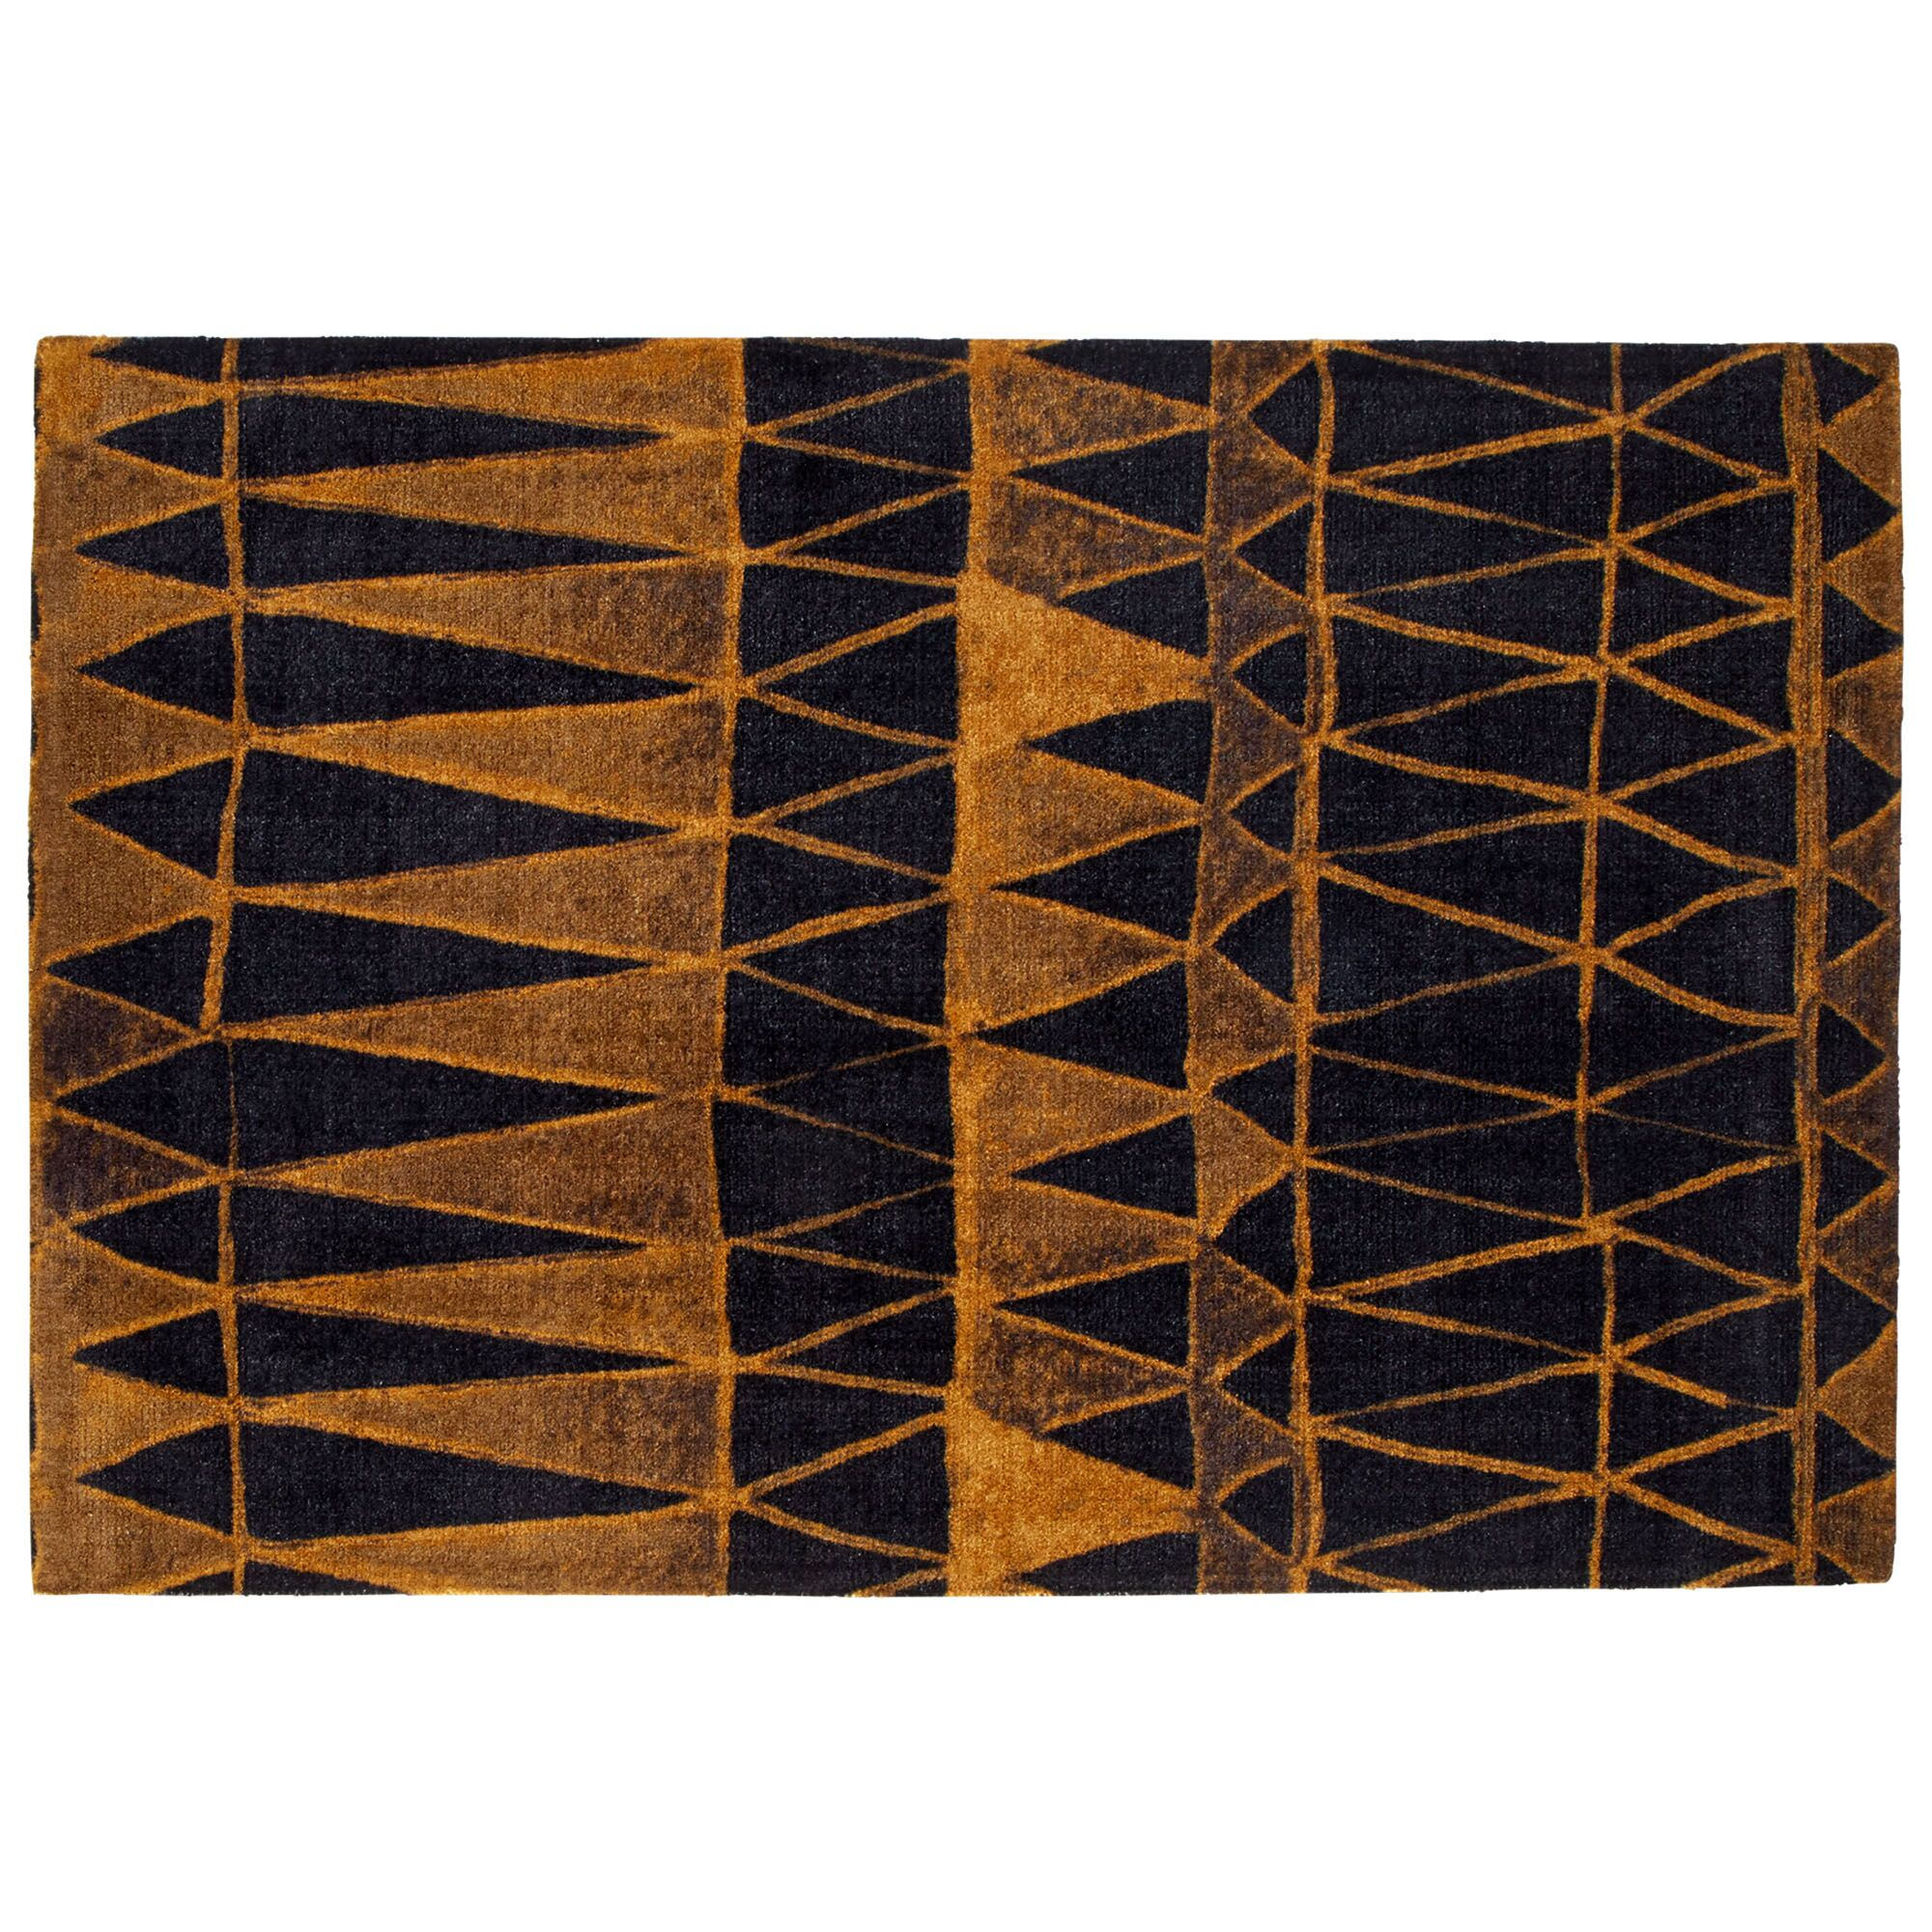 Marrakech Black/Gold Area Rug Rug Size: Rectangle 6' W x 8